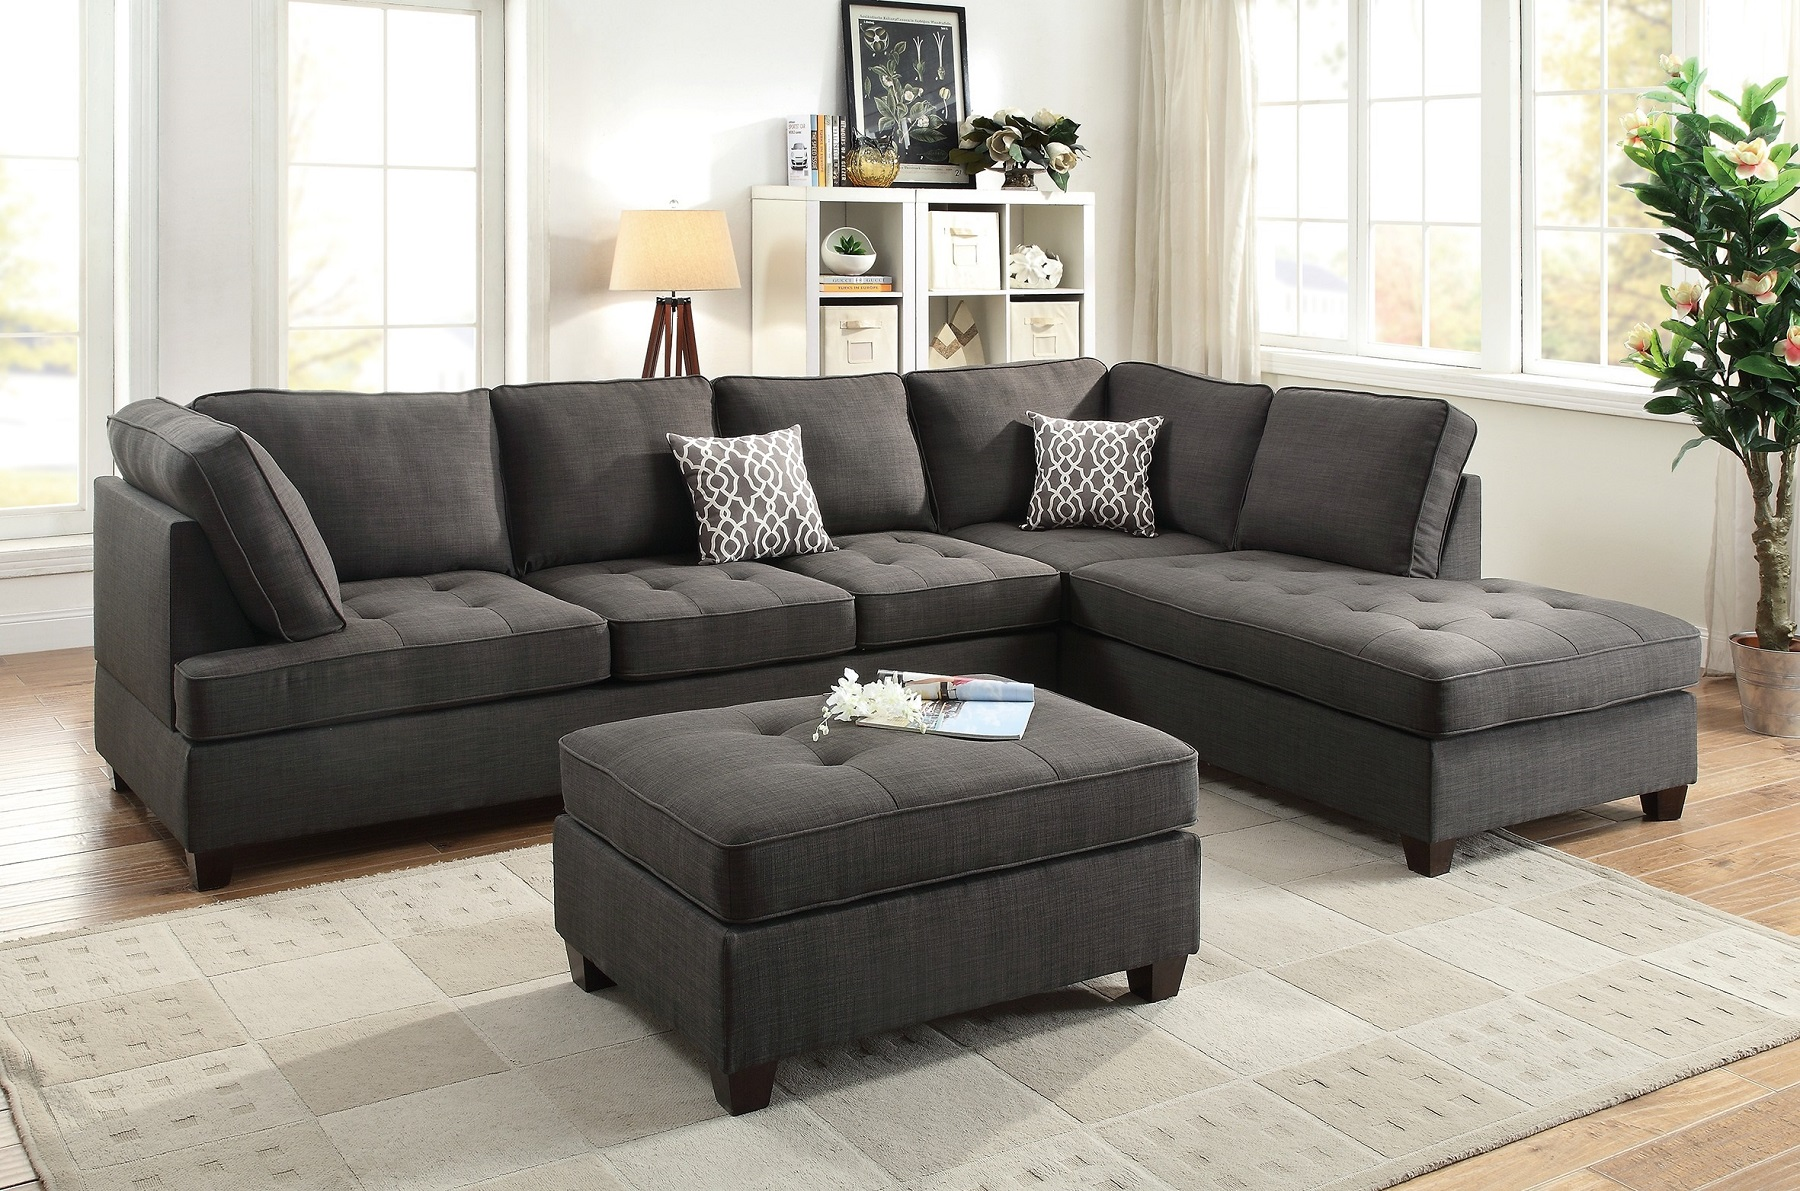 room and board sofa reviews crushed velvet corner bed black sectional chaise poundex f6988 hot sectionals